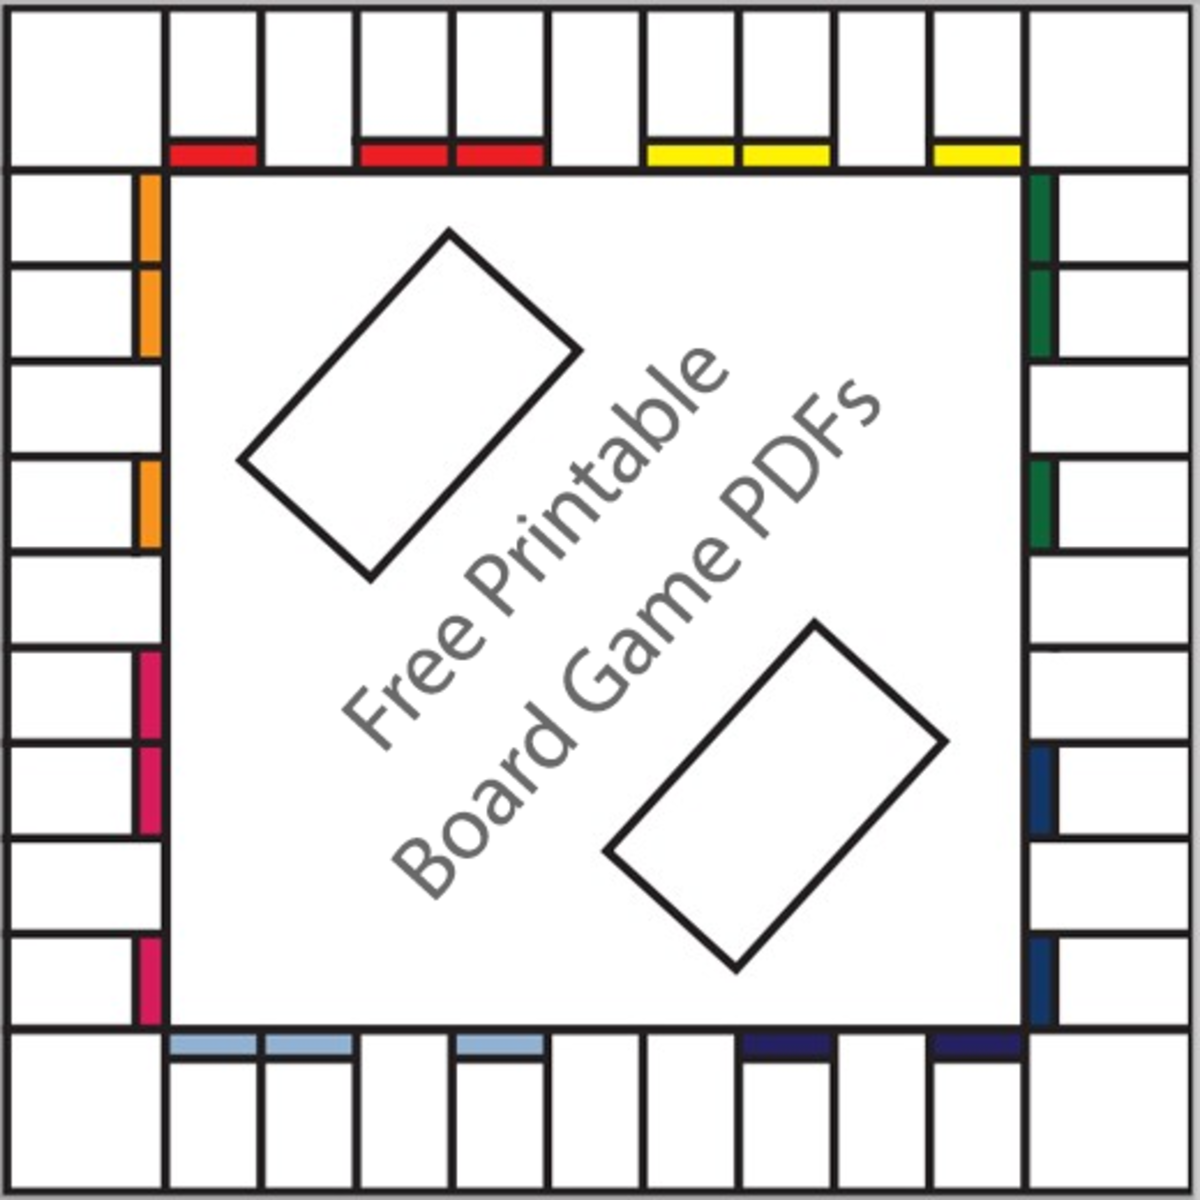 16 Free Printable Board Game Templates Hubpages